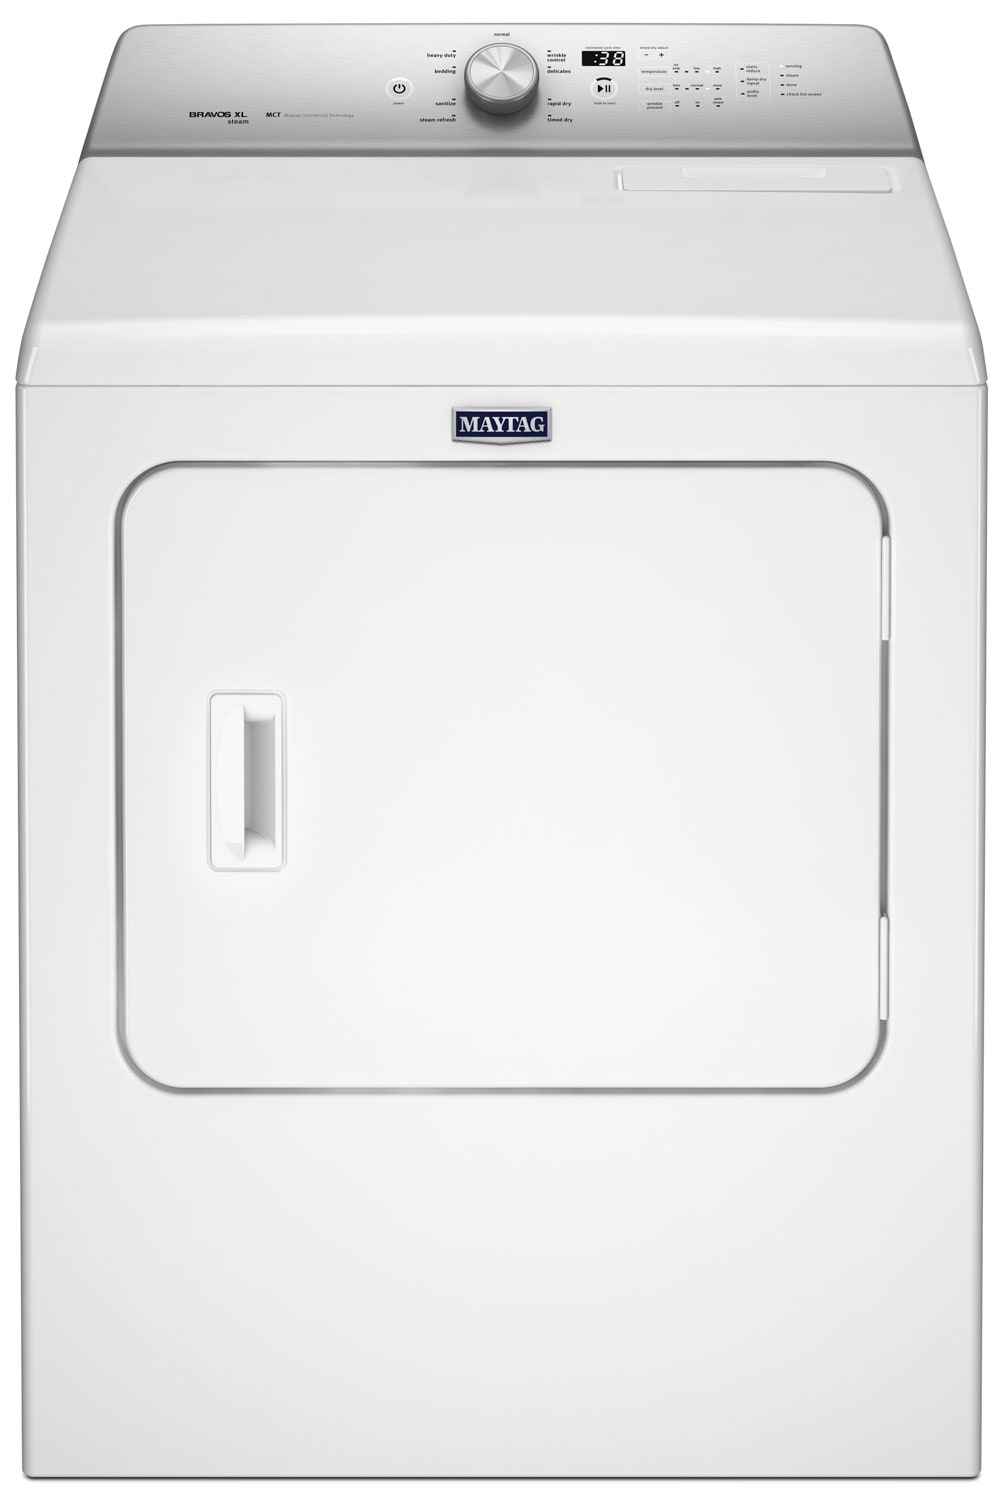 Maytag Dryer (7.0 Cu. Ft.) YMEDB755DW